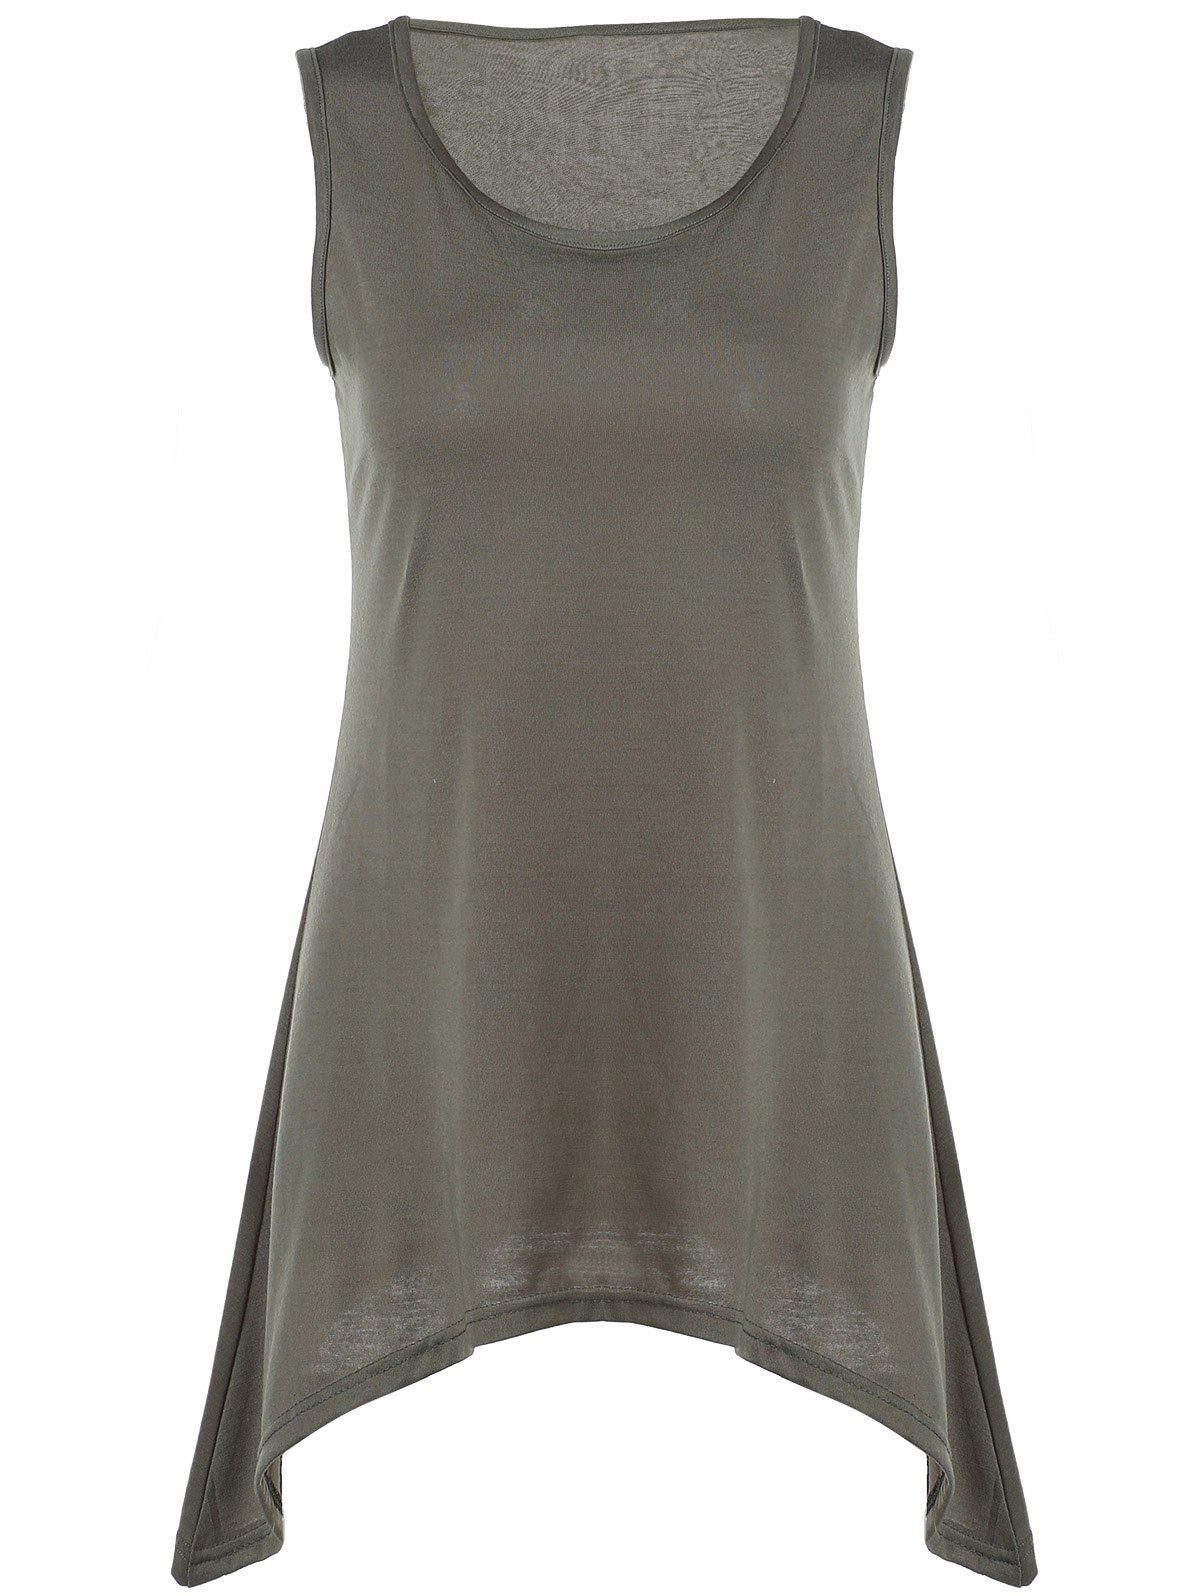 Stylish U Neck Sleeveless Solid Color Asymmetrical Women's Tank Top - ARMY GREEN L